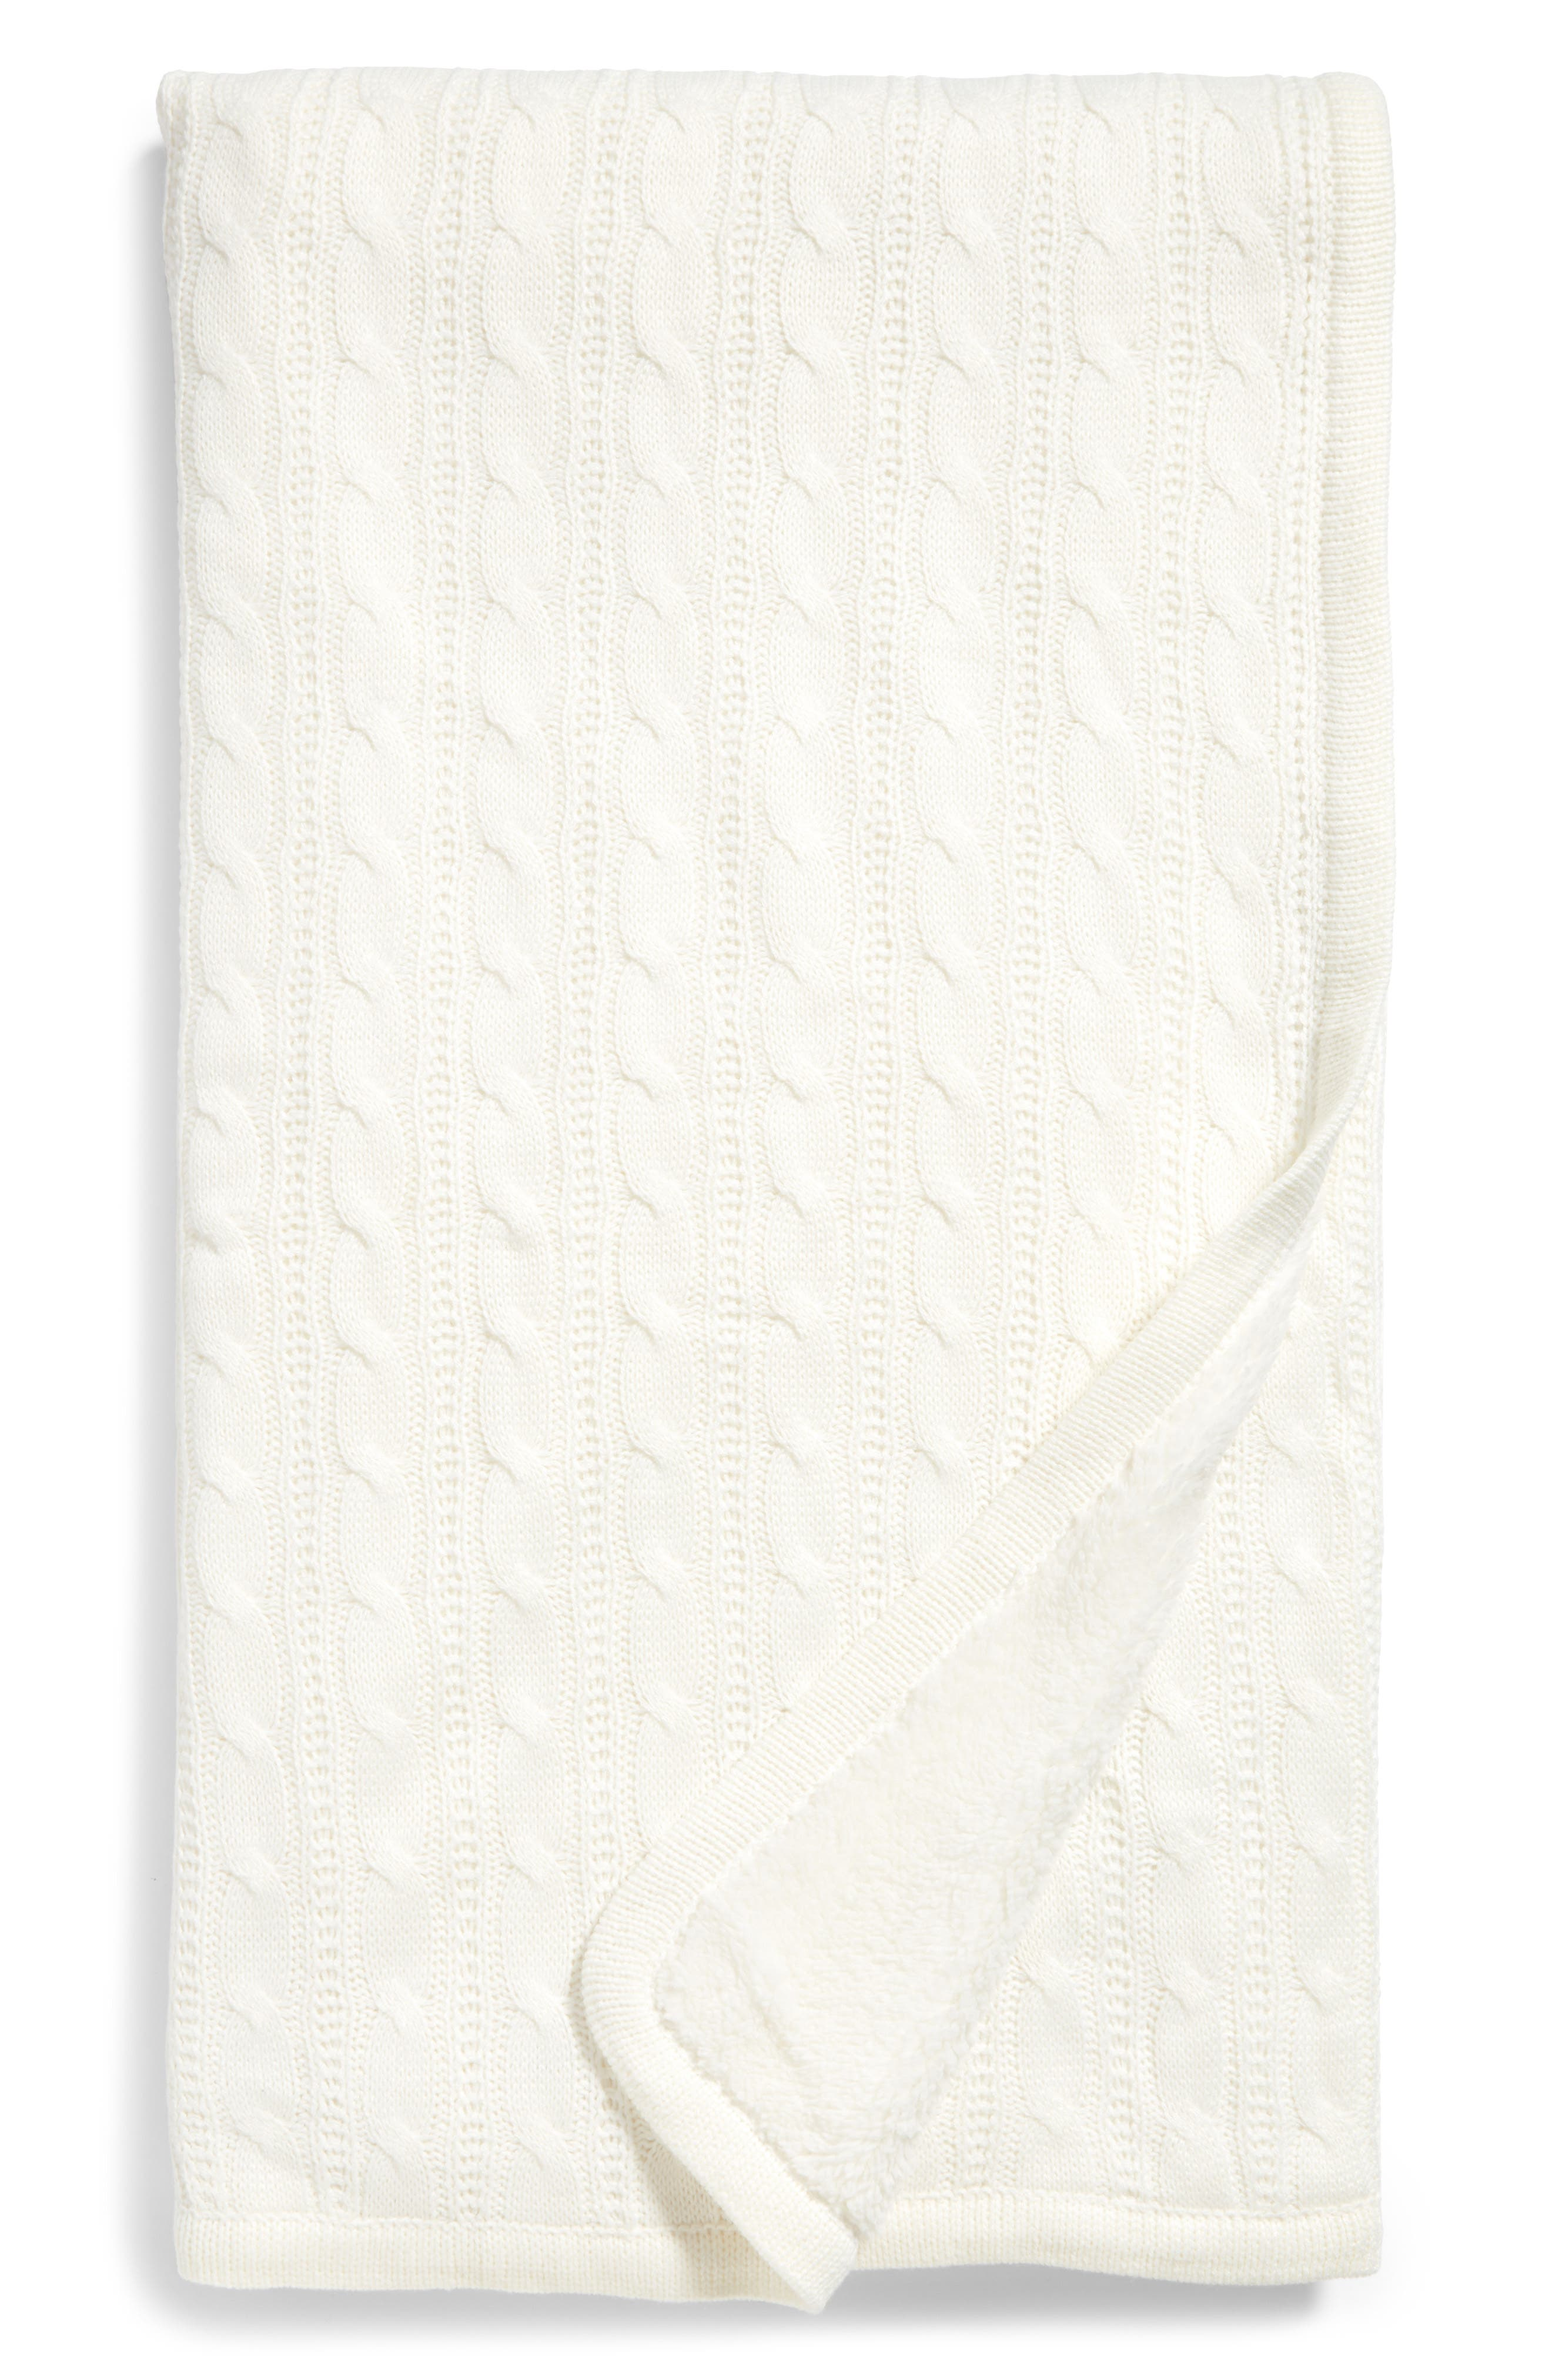 Cable Knit Throw Blanket,                             Main thumbnail 1, color,                             Ivory